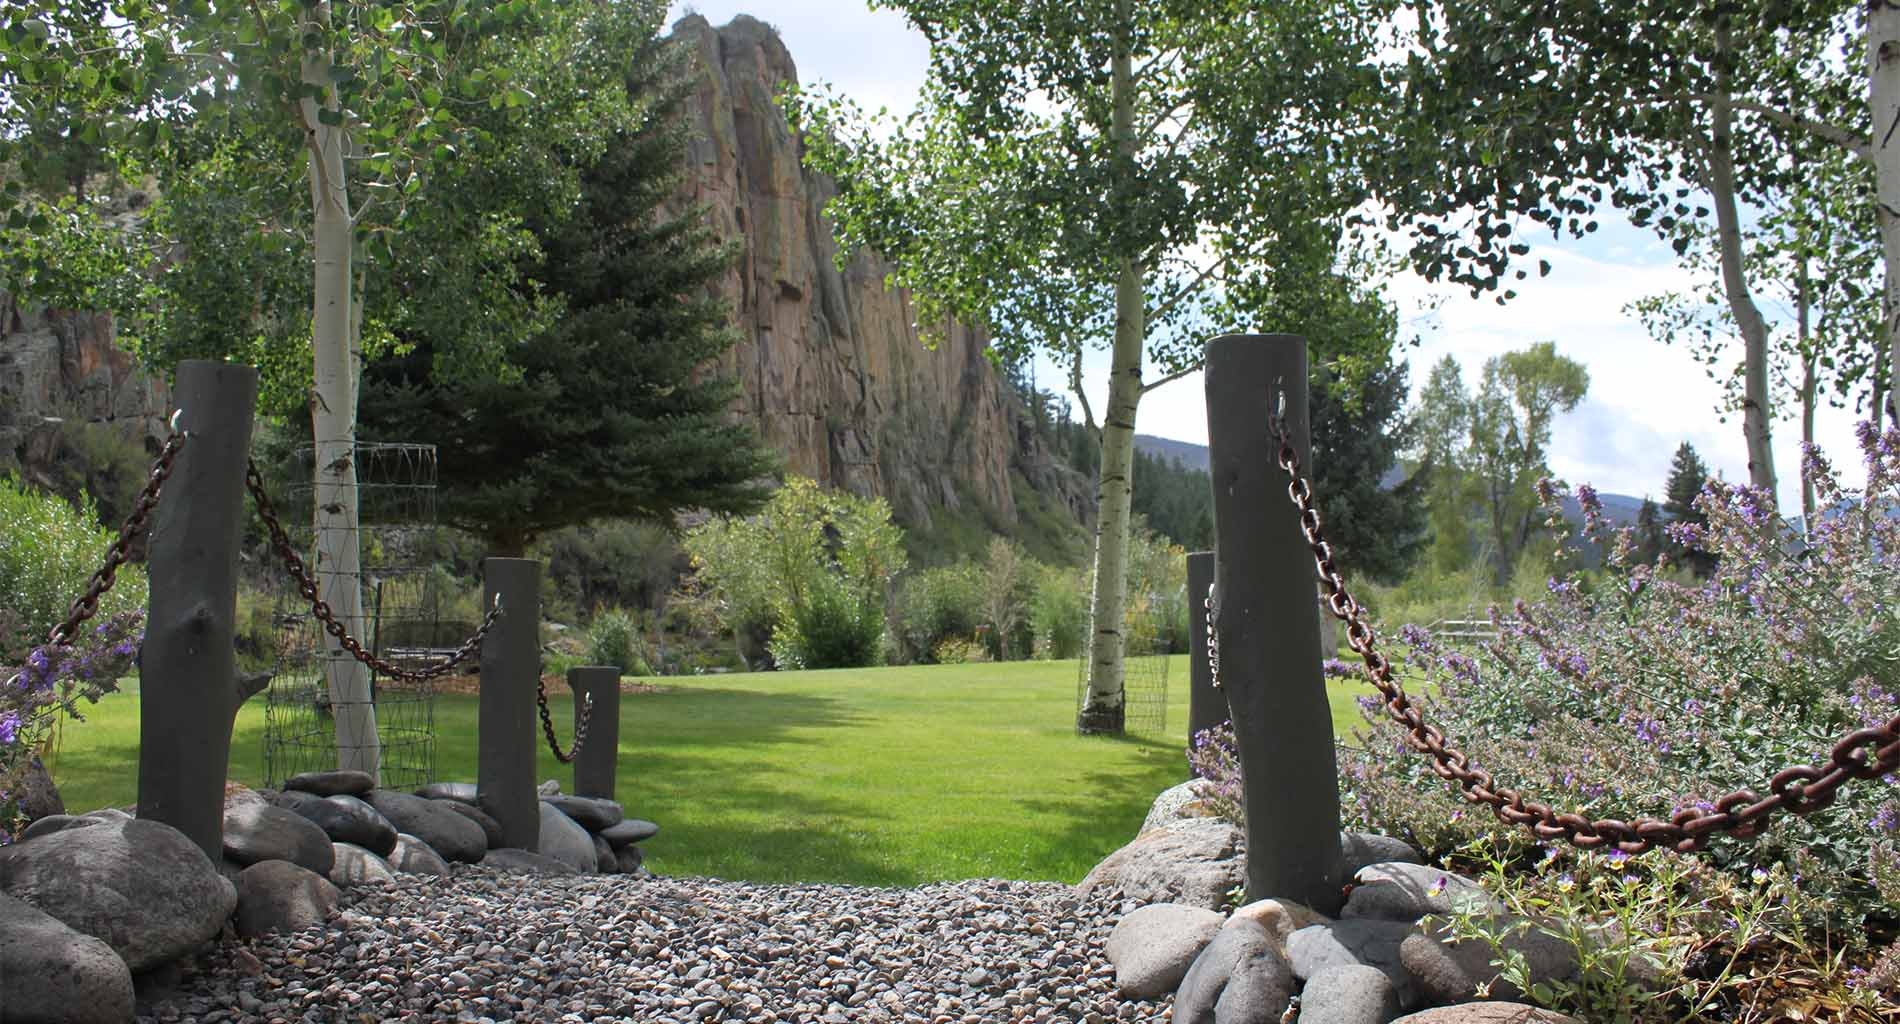 Back yard of inn with tall cliffs, green grass, aspen trees, purple flowers, and gravel pathway